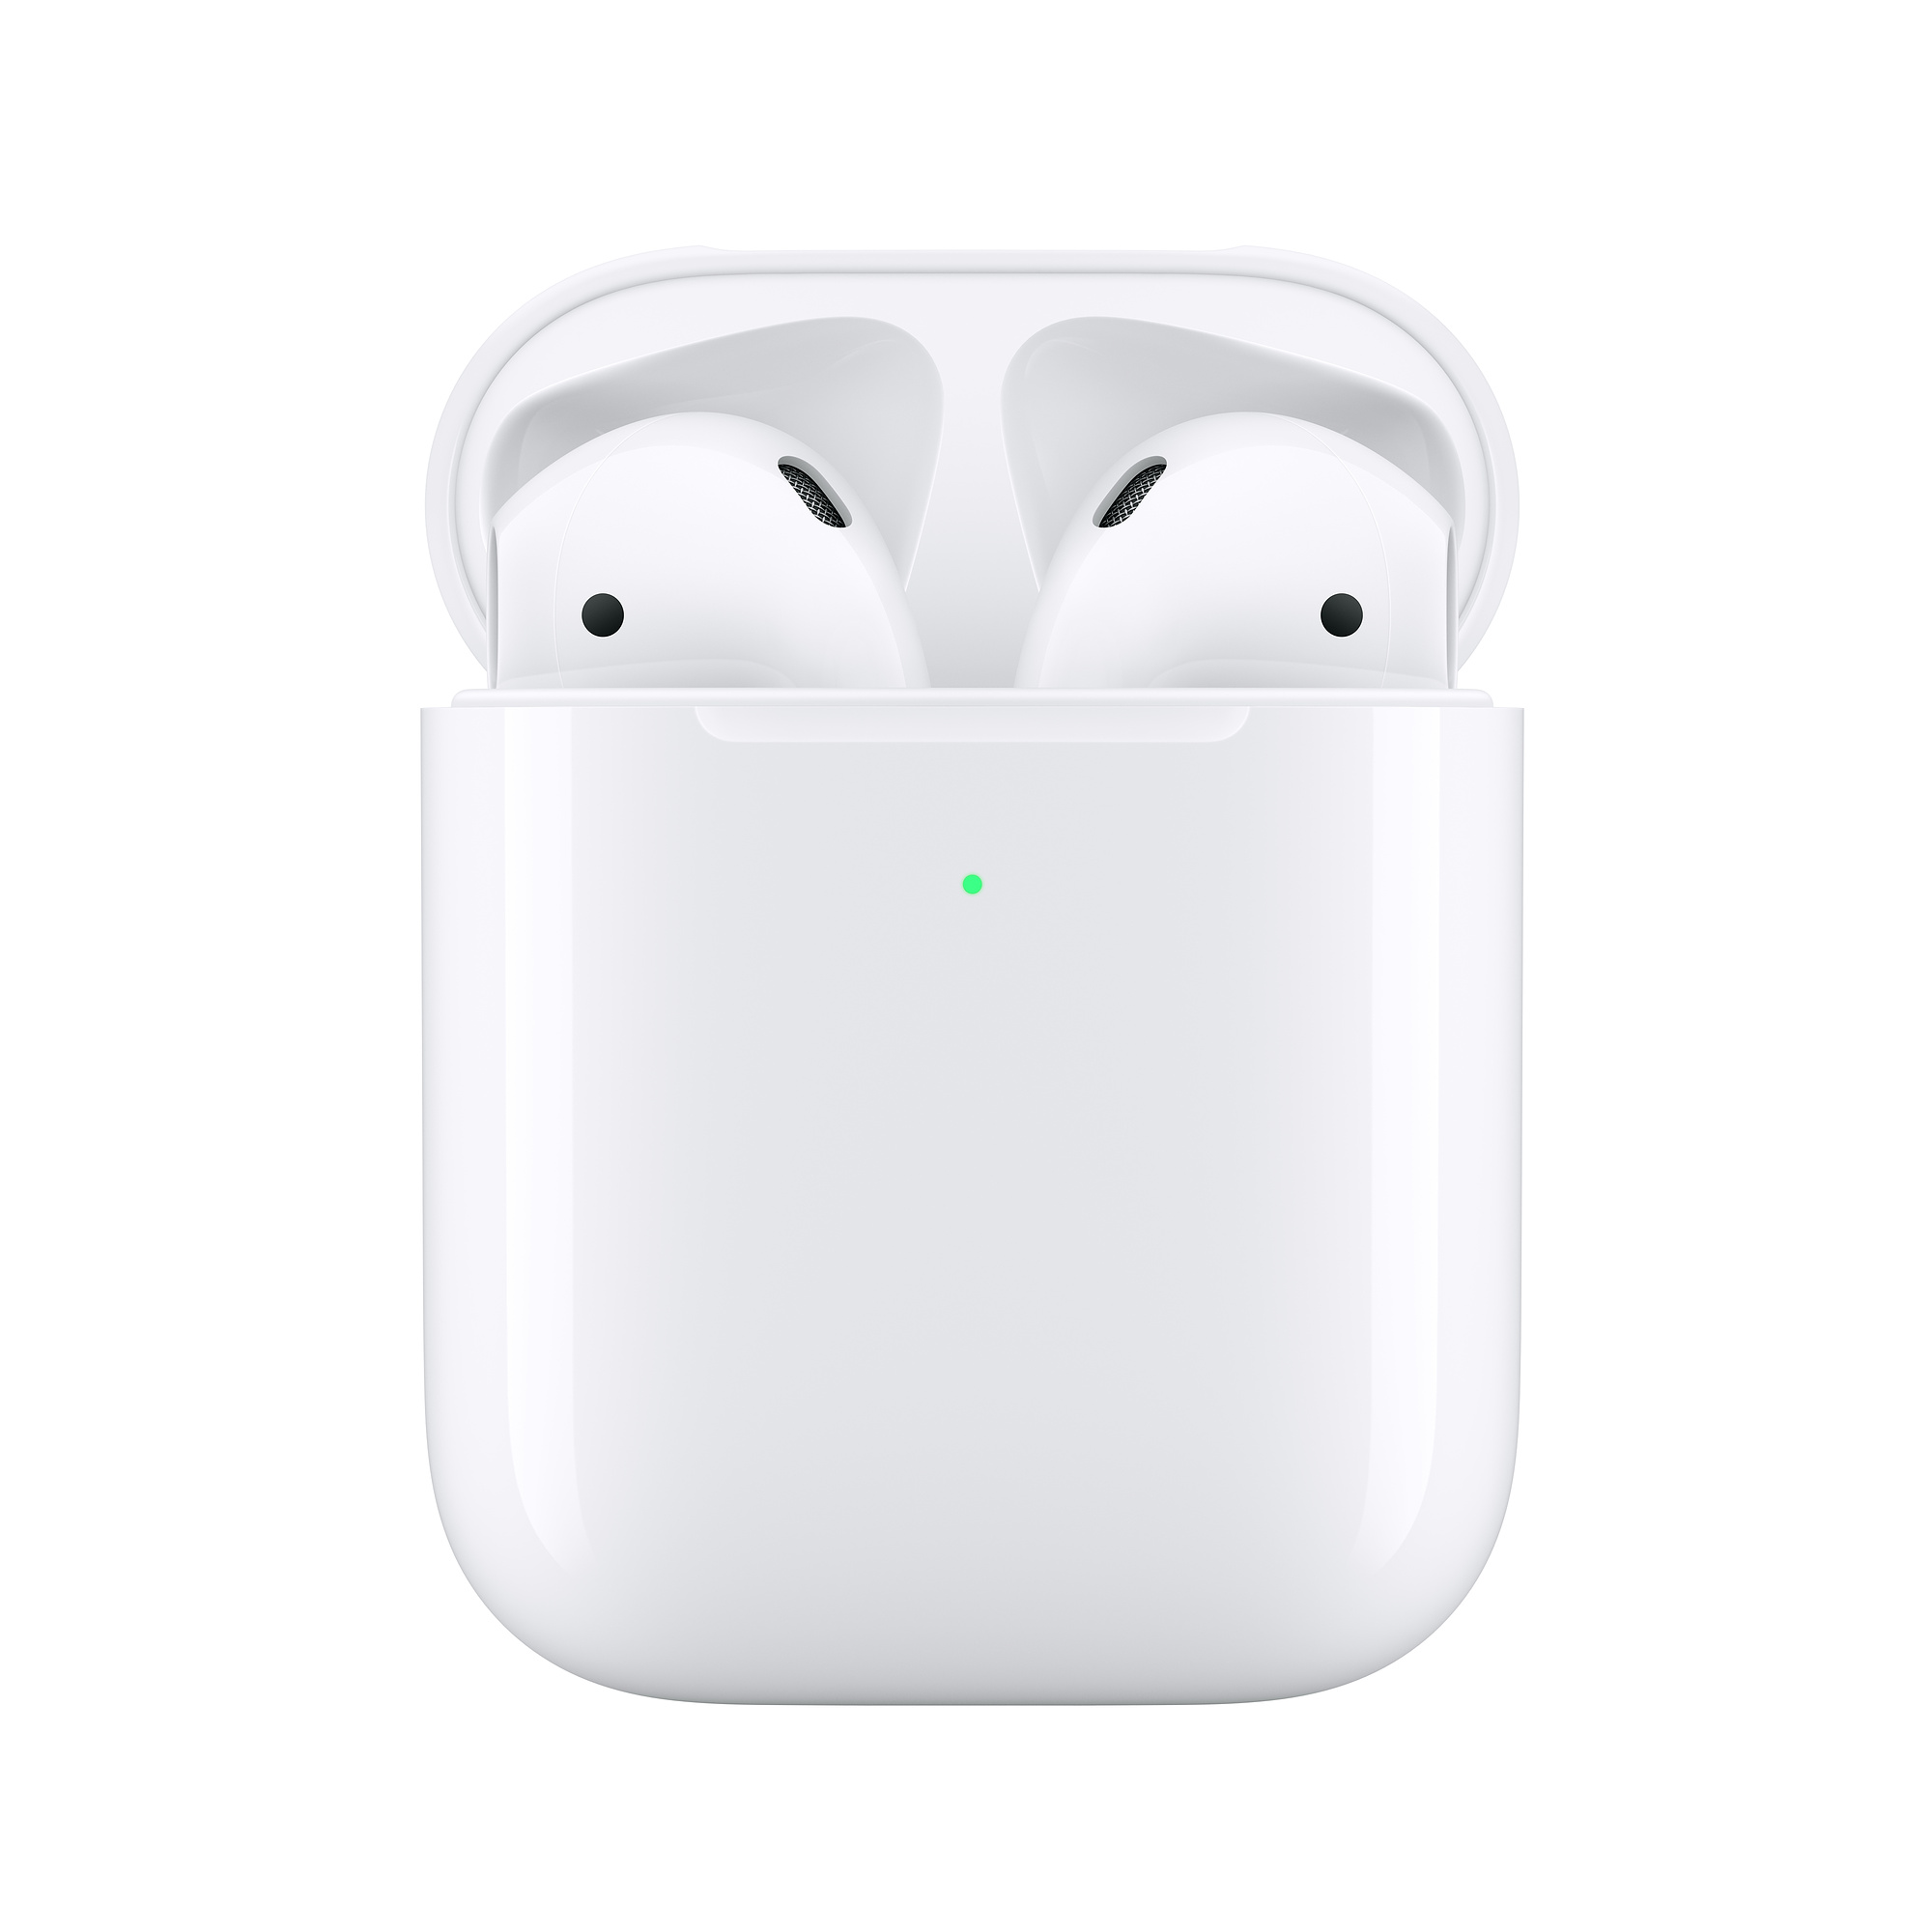 AirPods 2019 with Wireless Charging Case (MRXJ2)